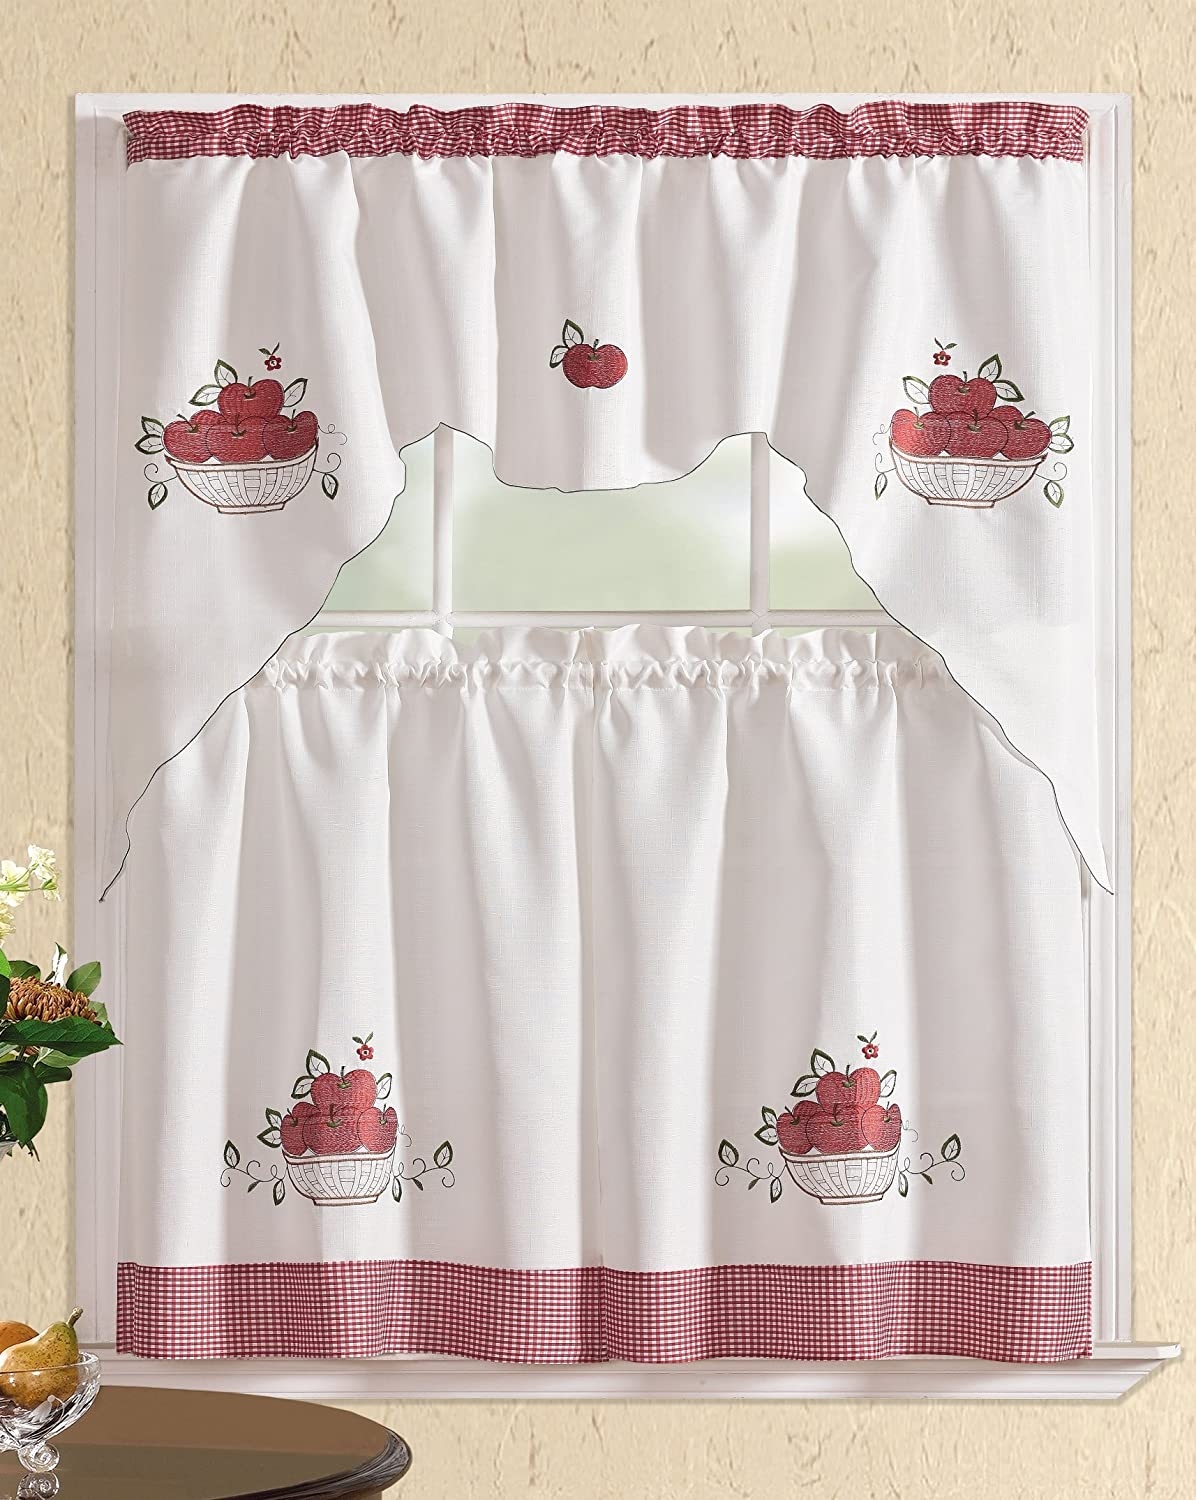 60X36//30X36 All American Collection New 3pc Attached Embroidered Kitchen Curtain Set with Tie Backs Yellow